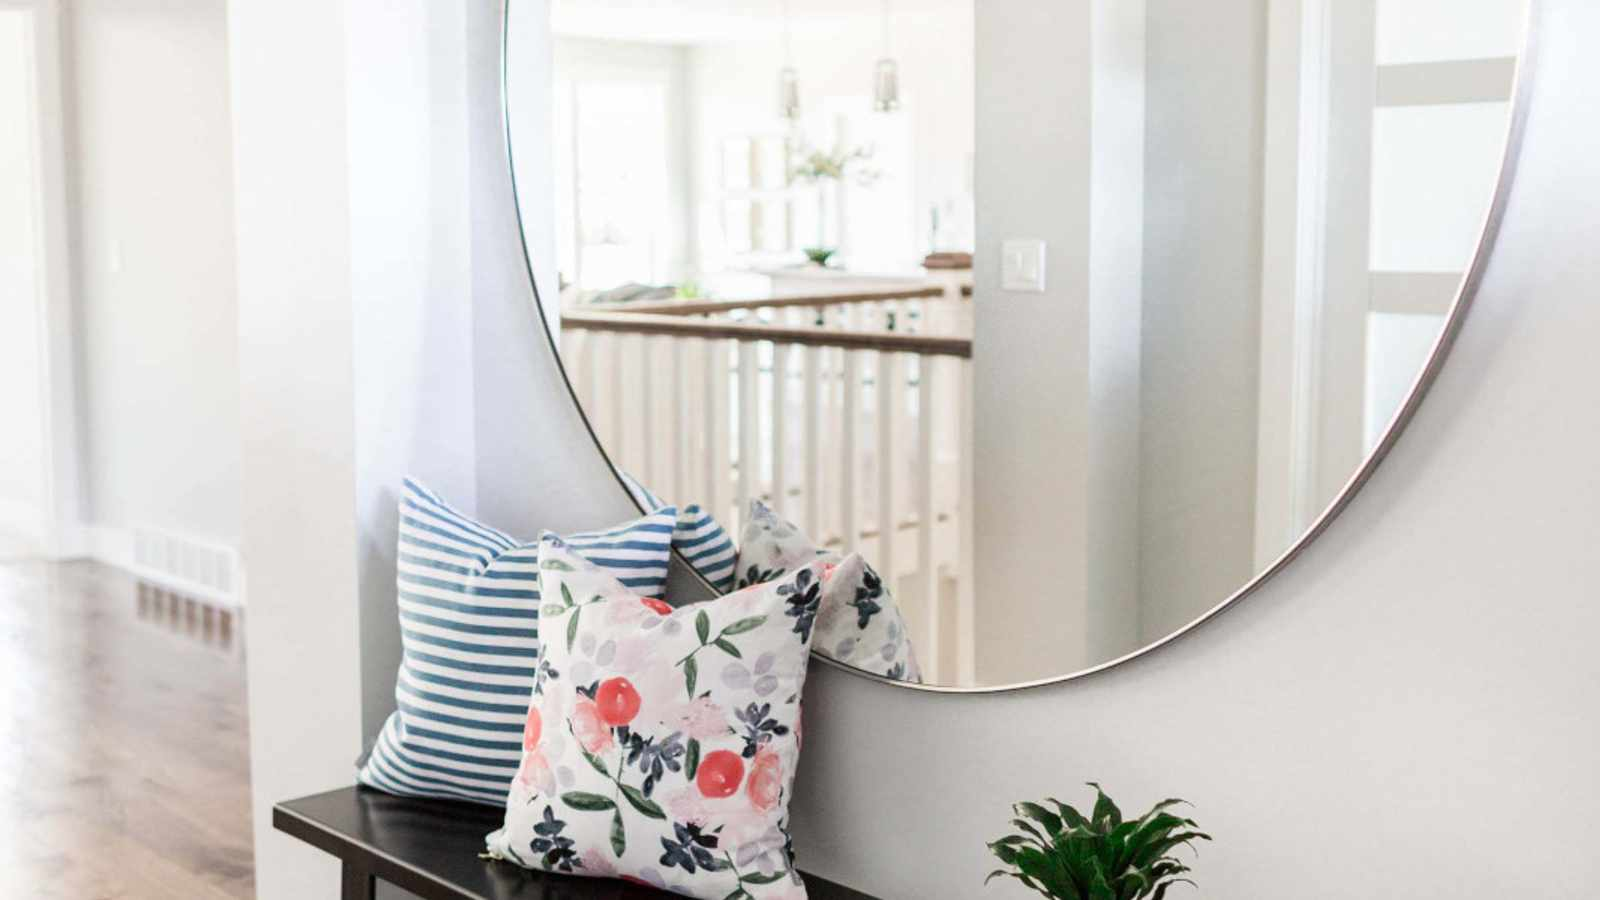 How to decorate with mirrors without turning your home into a fun house